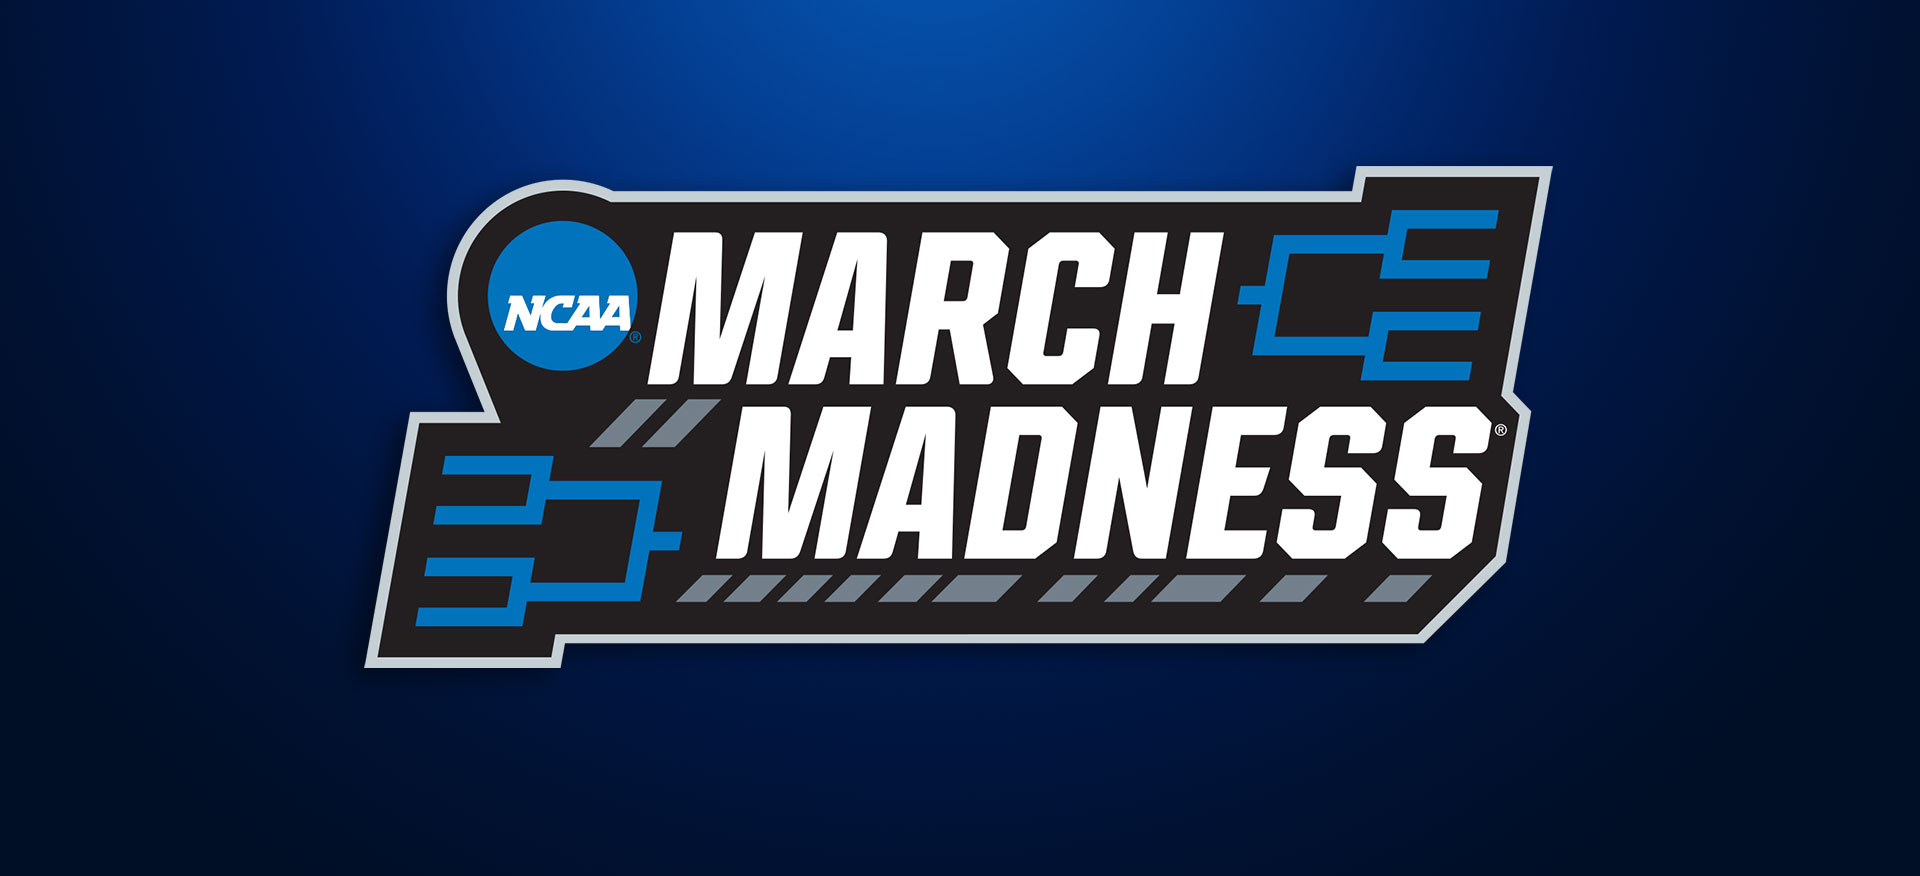 NCAA Basketball Tournament March Madness